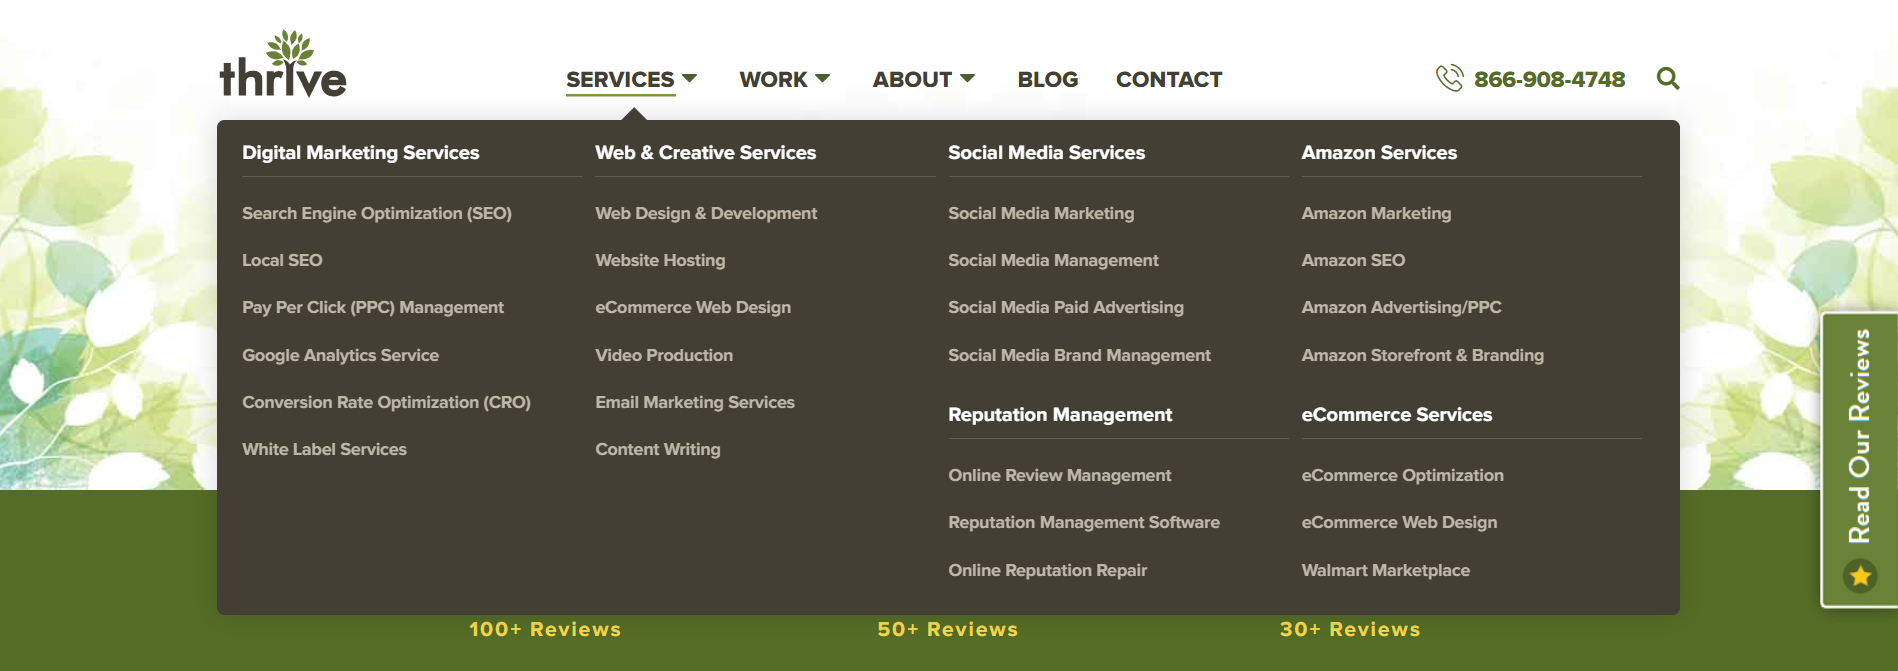 Thrive services page